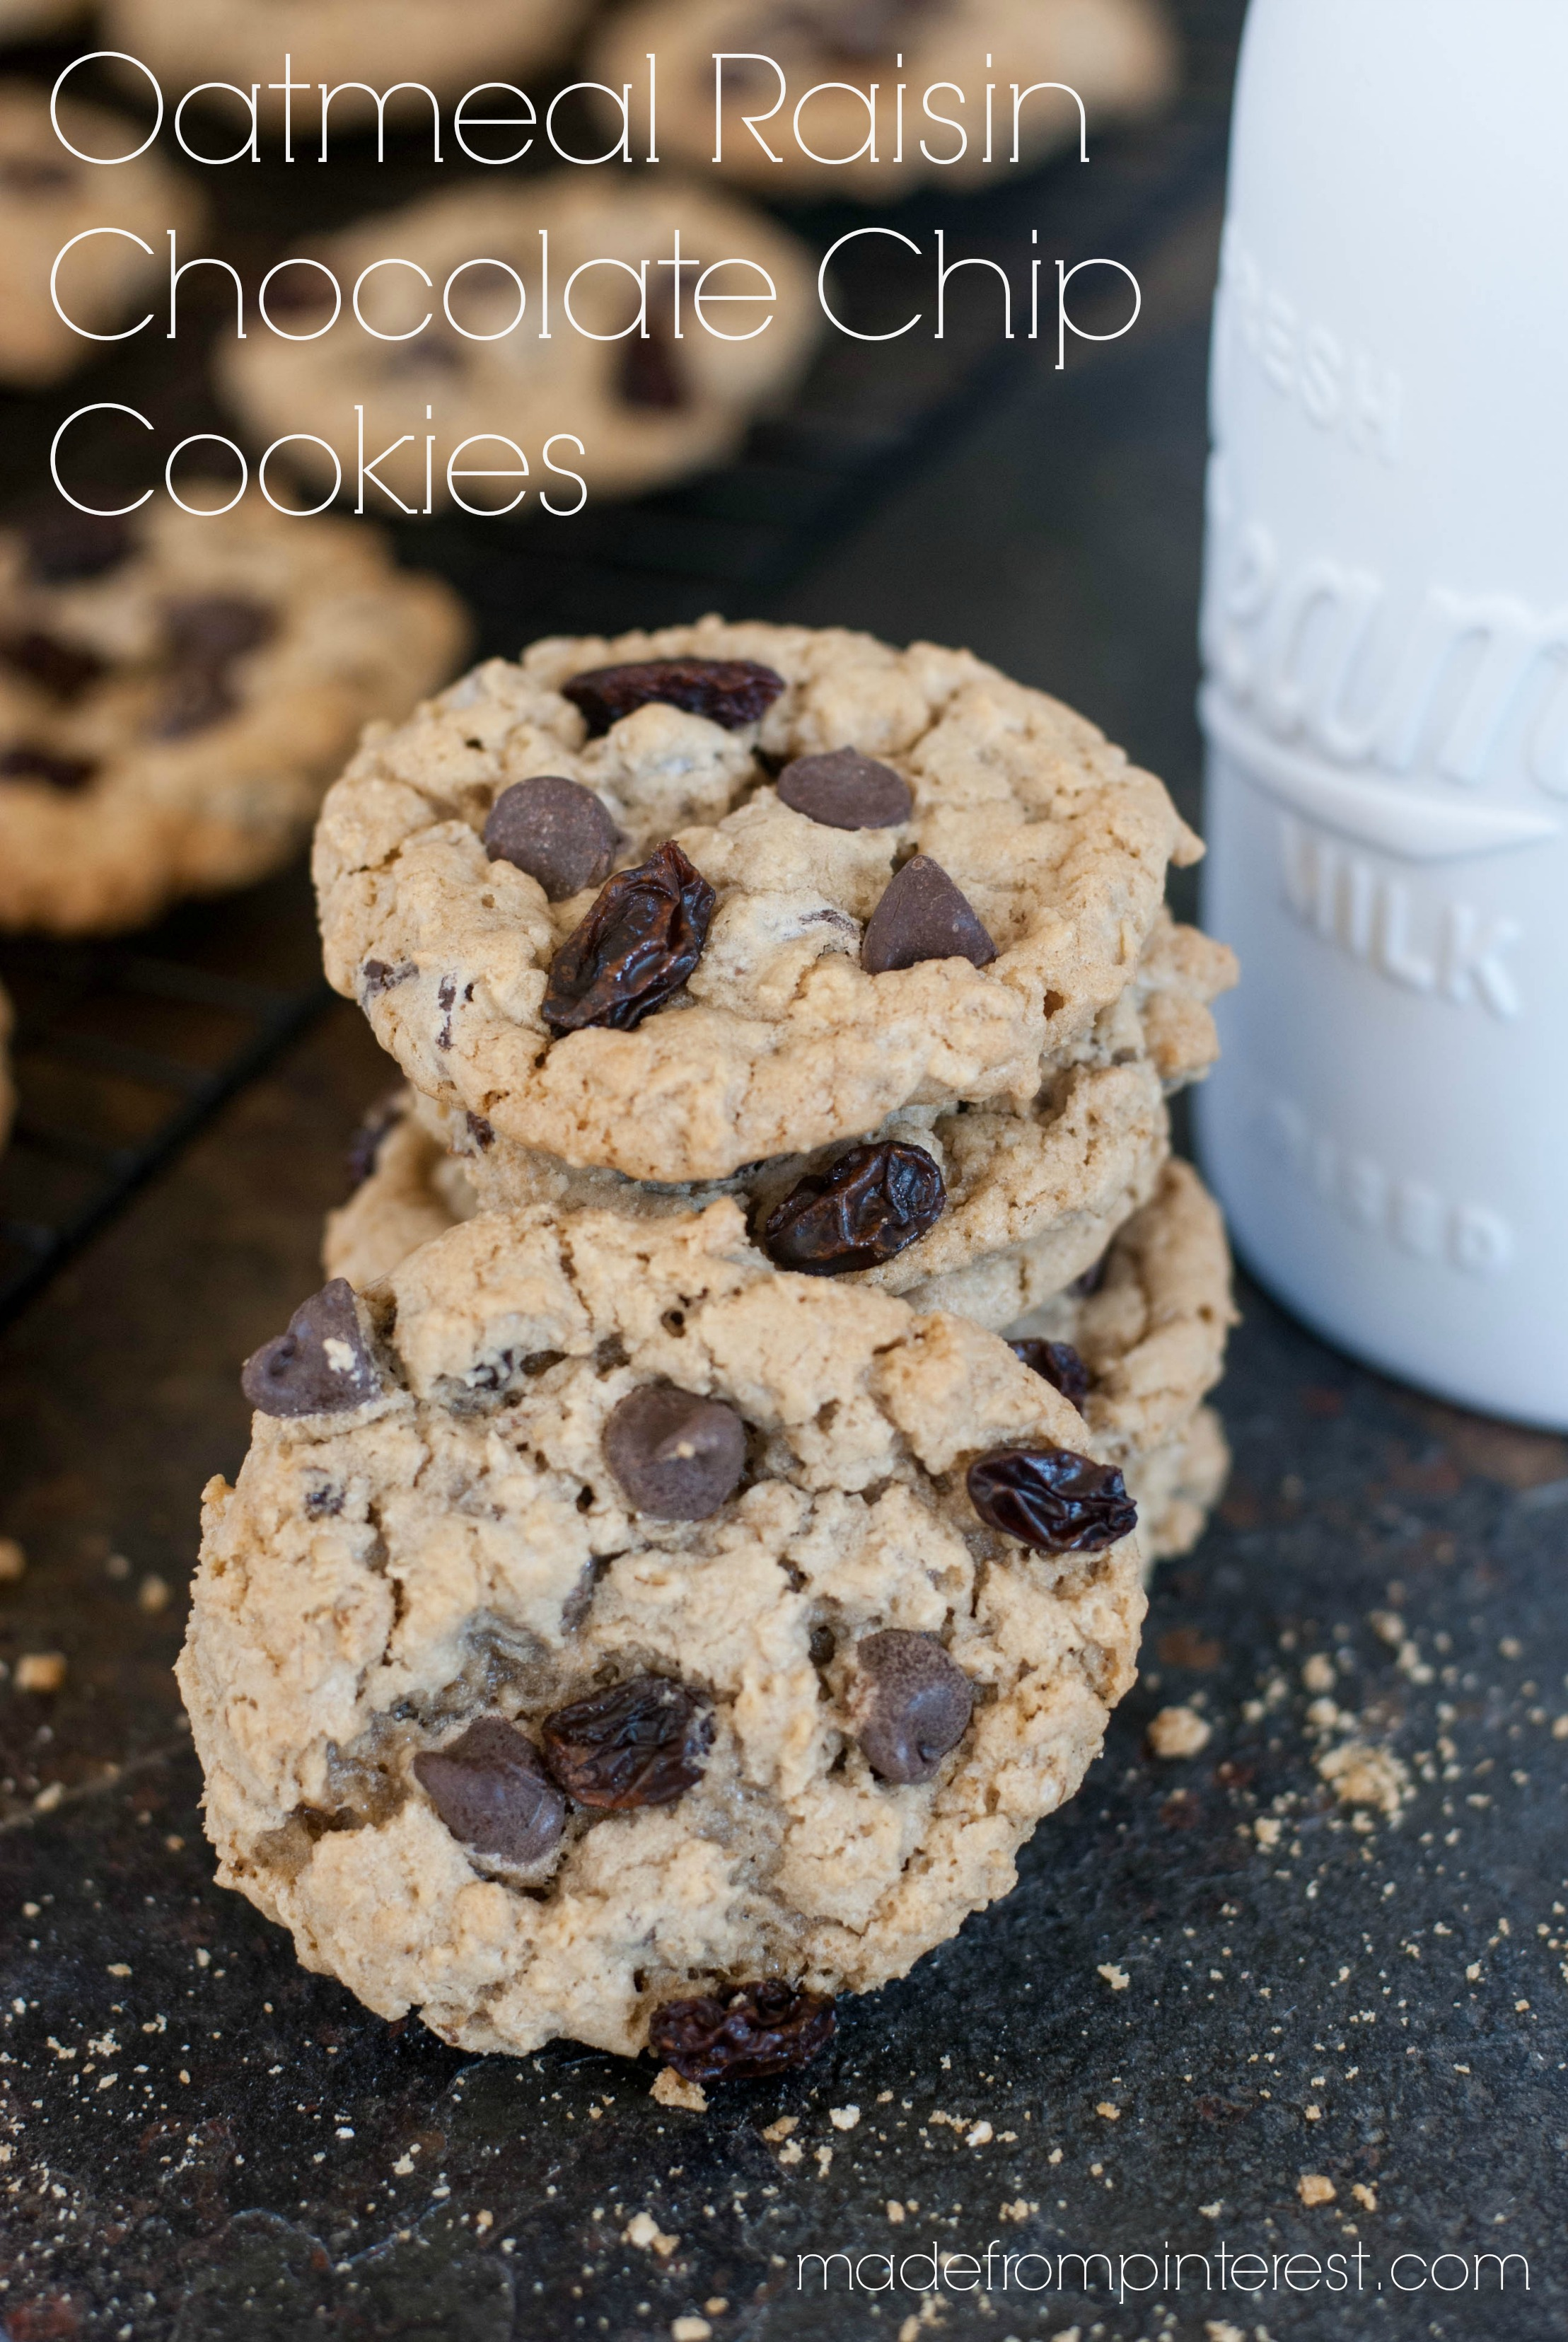 This Oatmeal Raisin Chocolate Chip Cookie recipe makes a MONSTER BATCH of cookies! Perfect for parties.